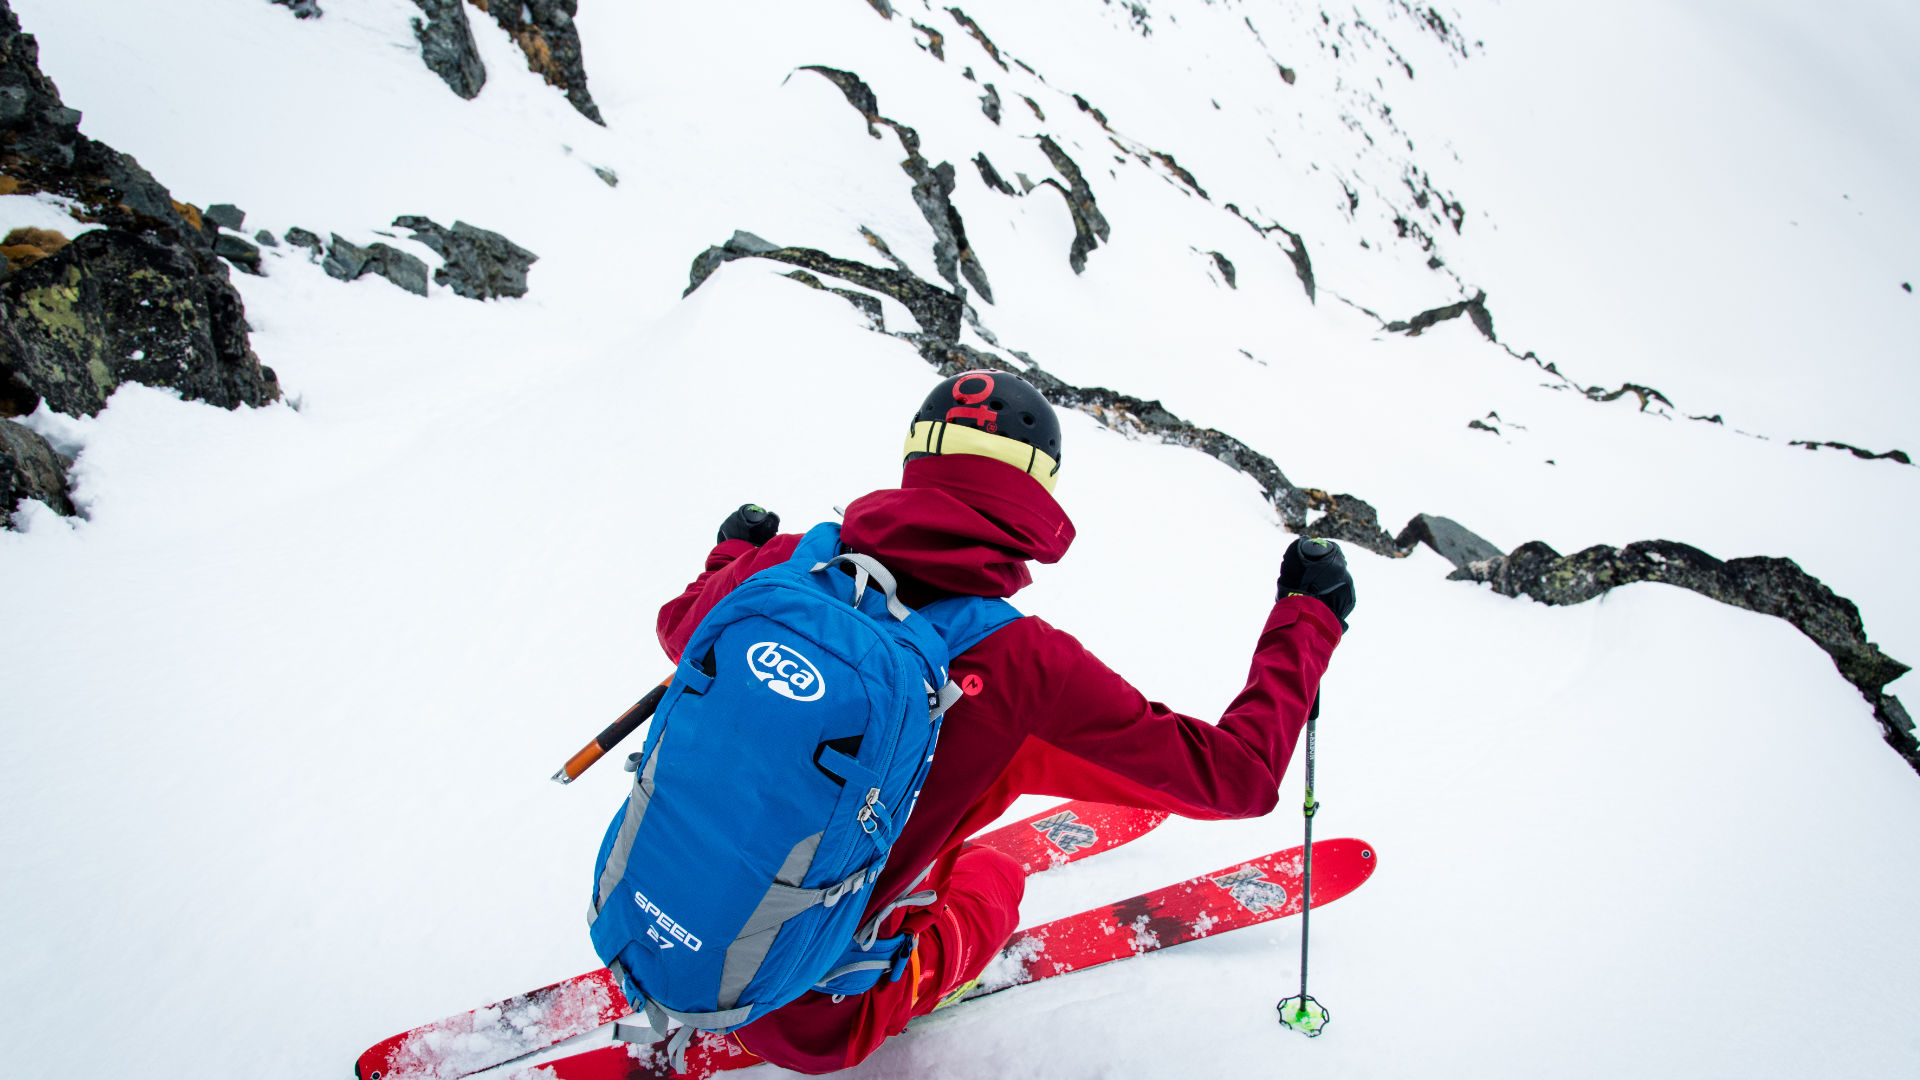 Freeride skier riding down a mountain with an avalanche backpack by BCA